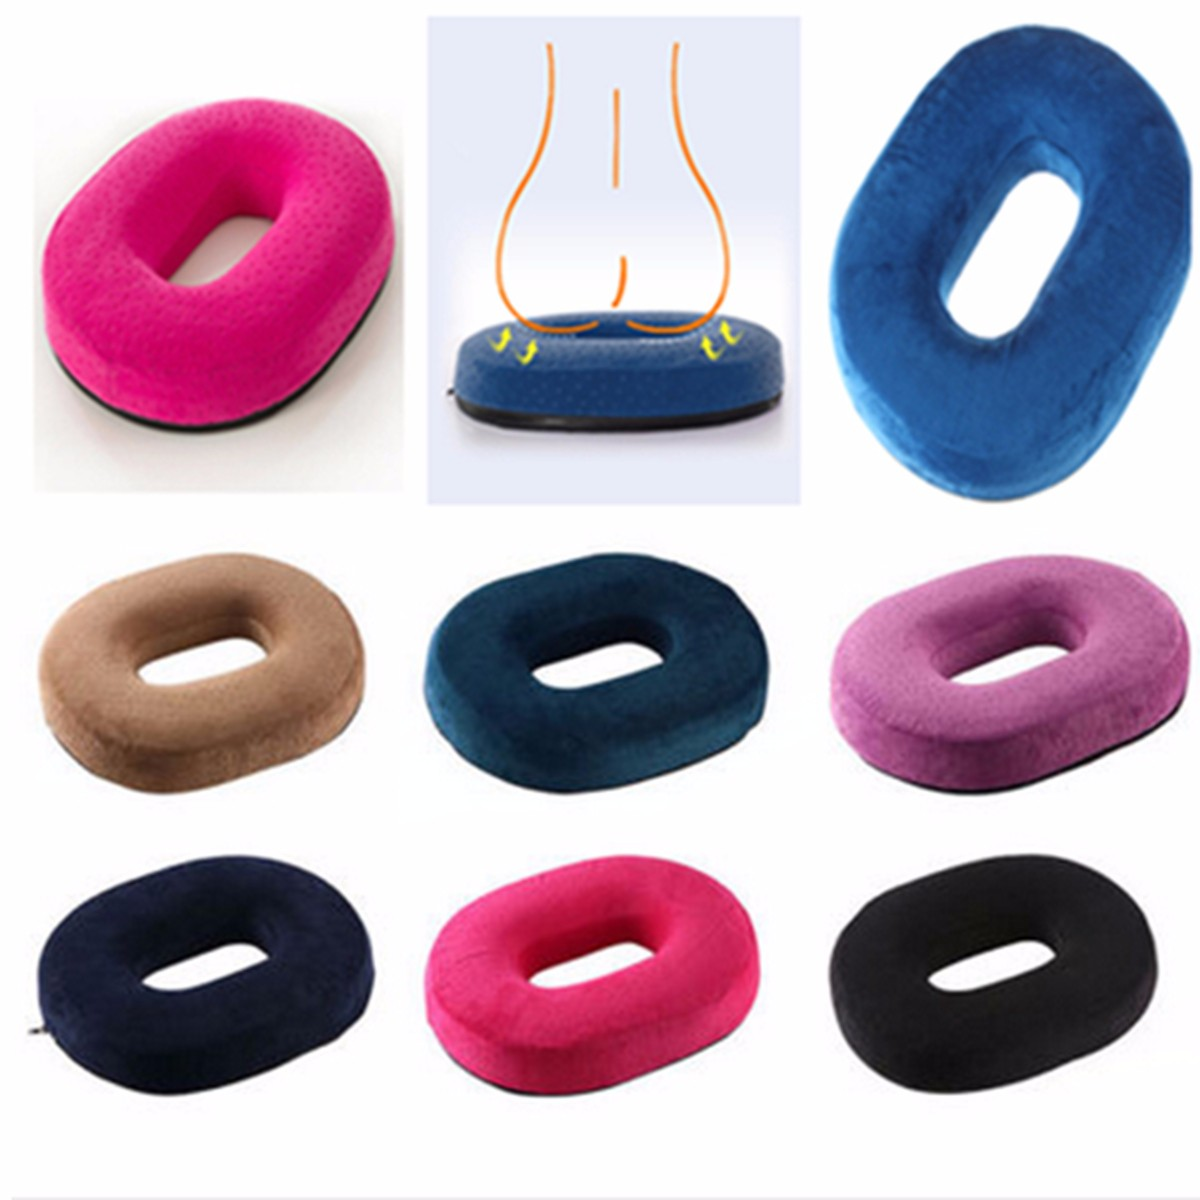 Memory Sponge Foam Pain Relief Ring Home Office Back Pain Tailbone Pregnancy Pressure Relief Cushion Car Chair Donut Seat Pillow